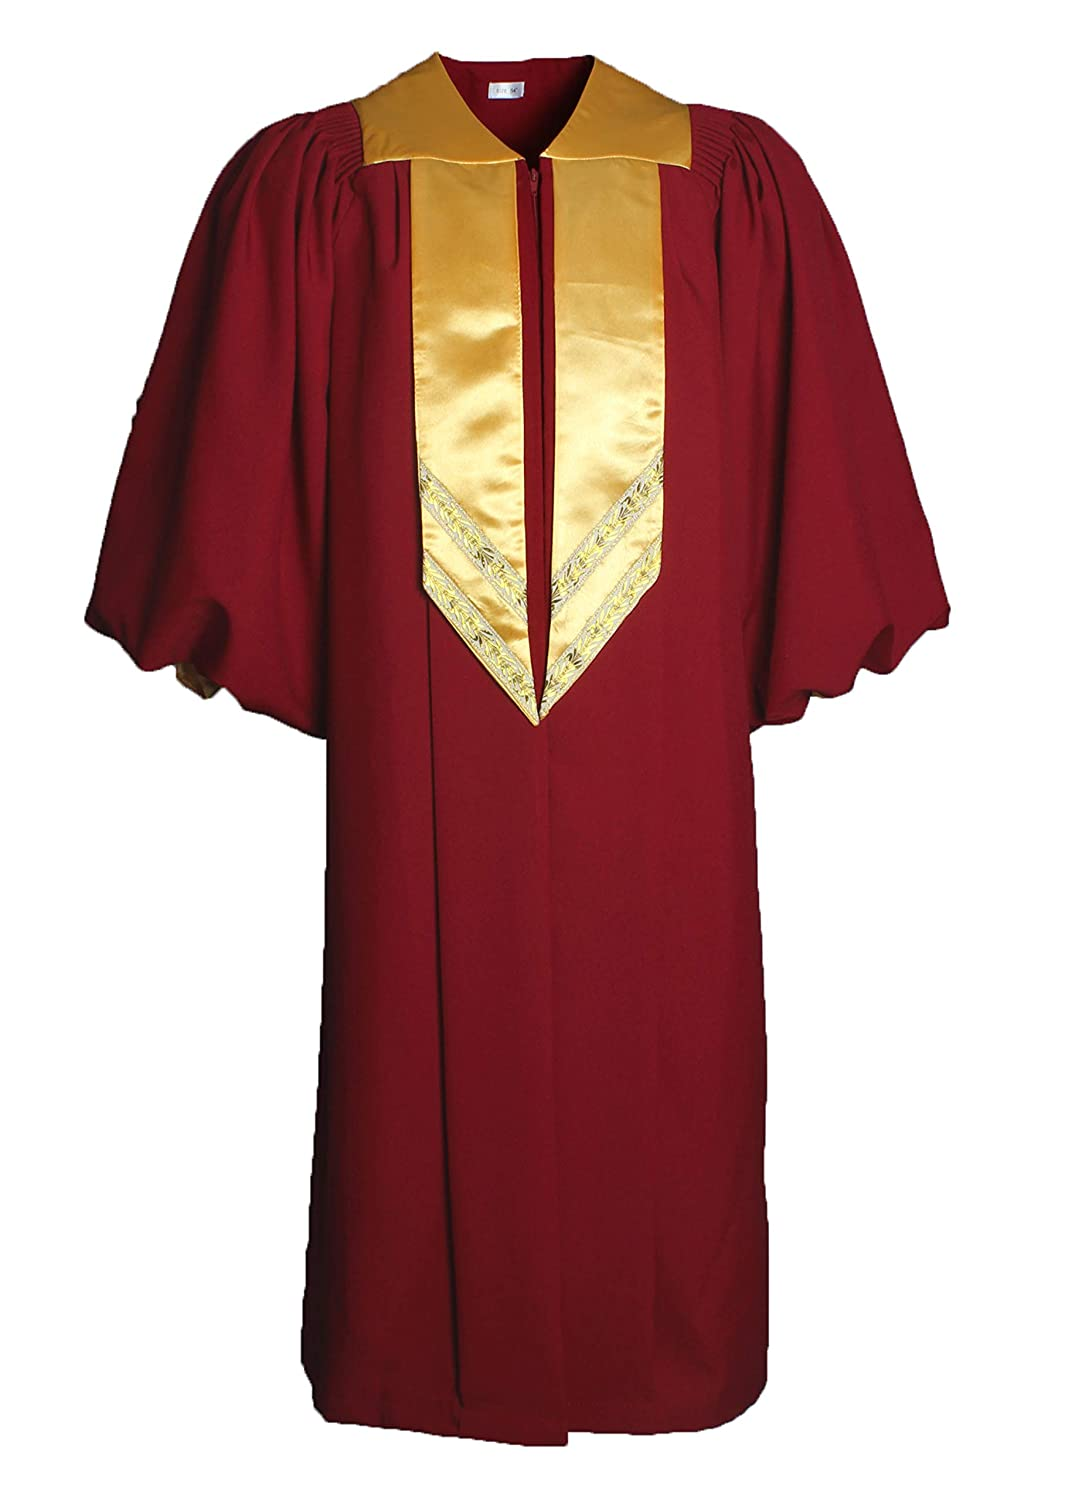 Maroon gold GradPlaza Deluxe Crescendo Choir Robe With Cuff Sleeves